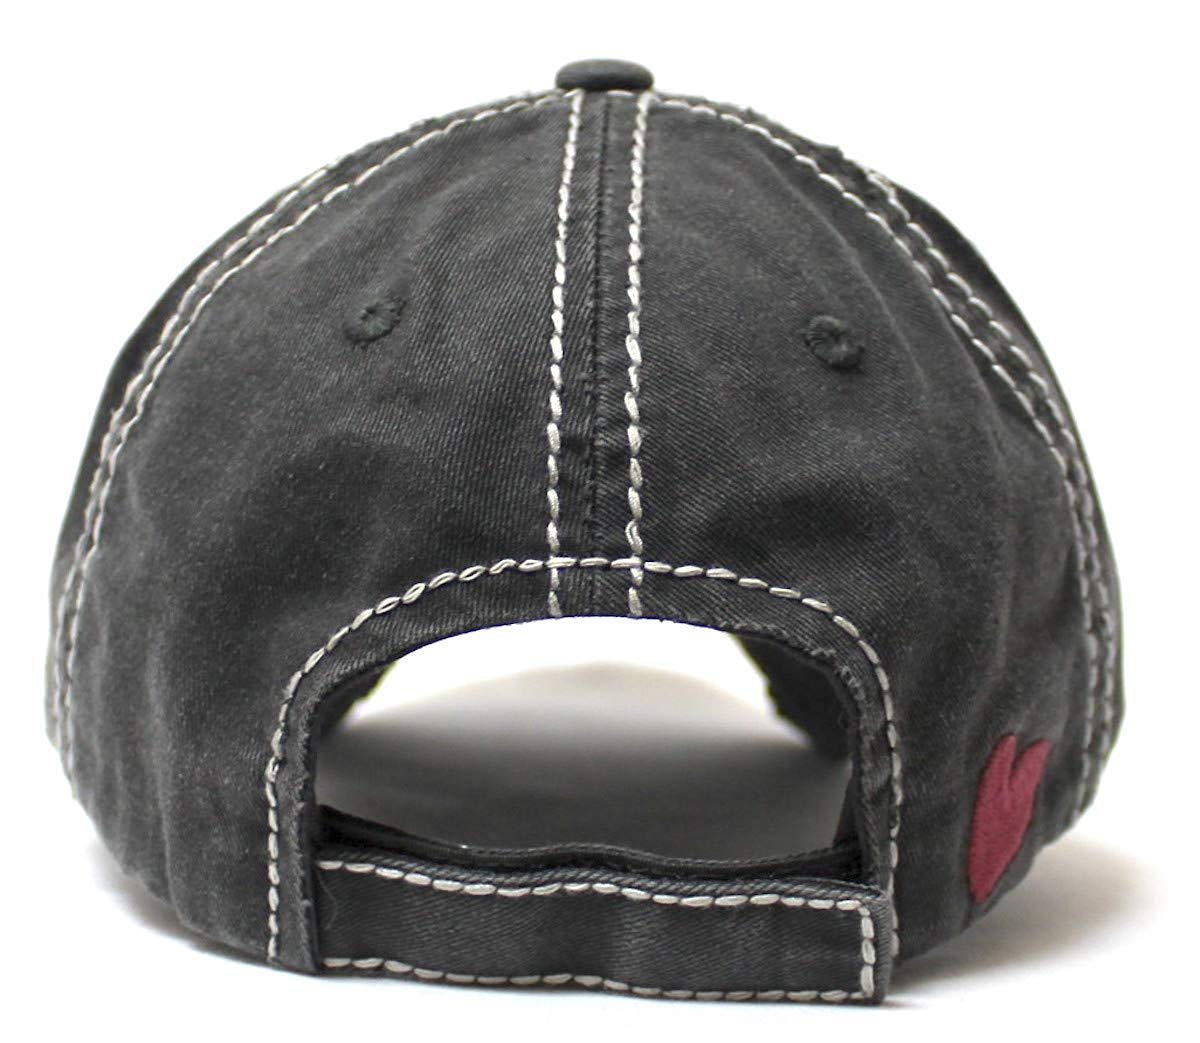 Women's Distressed Ballcap I Gotta Good Heart but This Mouth Hearts, Kisses Patch Embroidery Hat, Vintage Black - Caps 'N Vintage